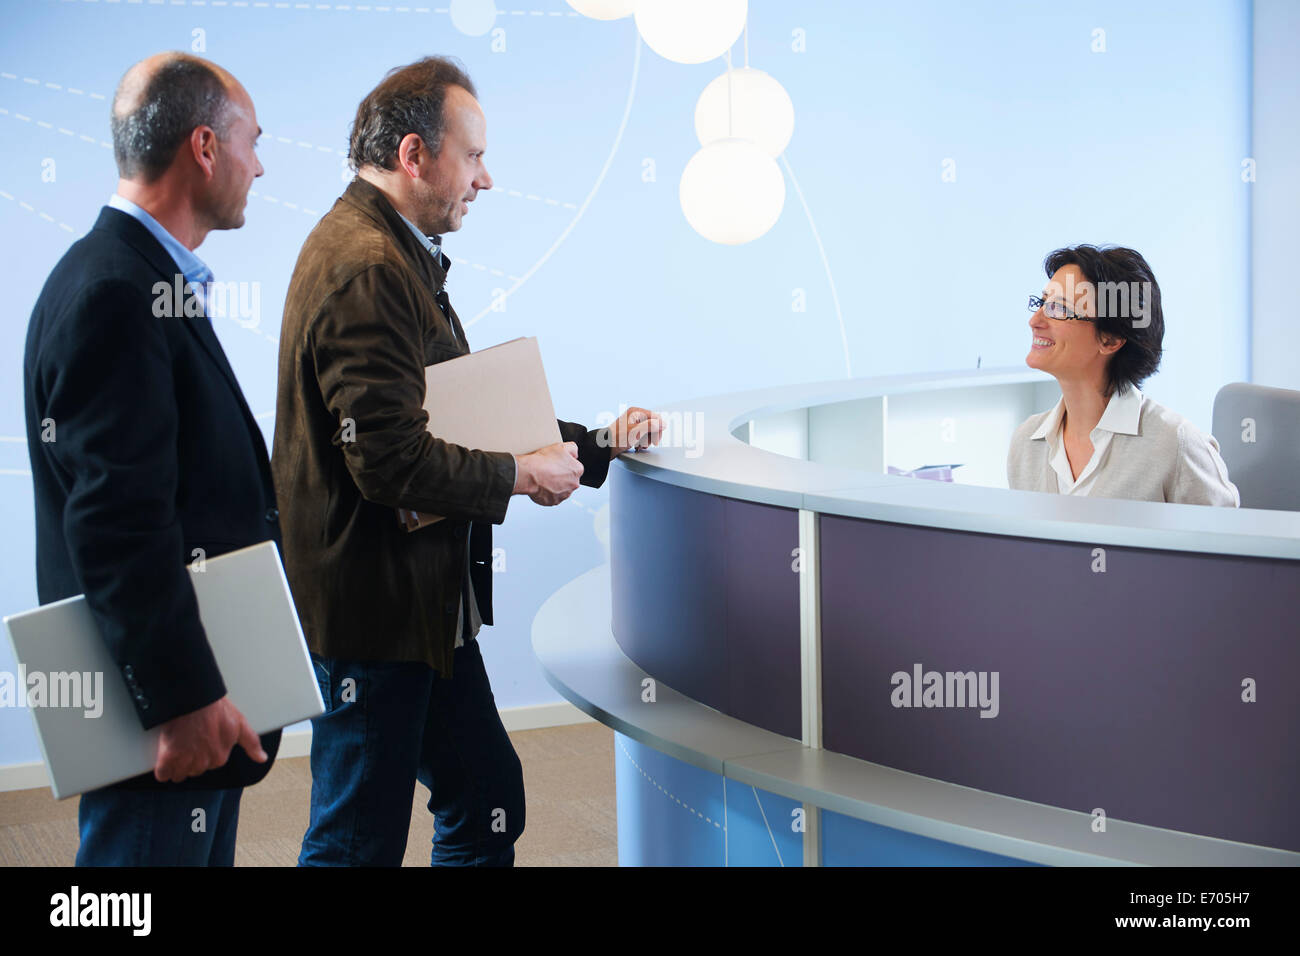 Two mature adult men speaking to receptionist - Stock Image